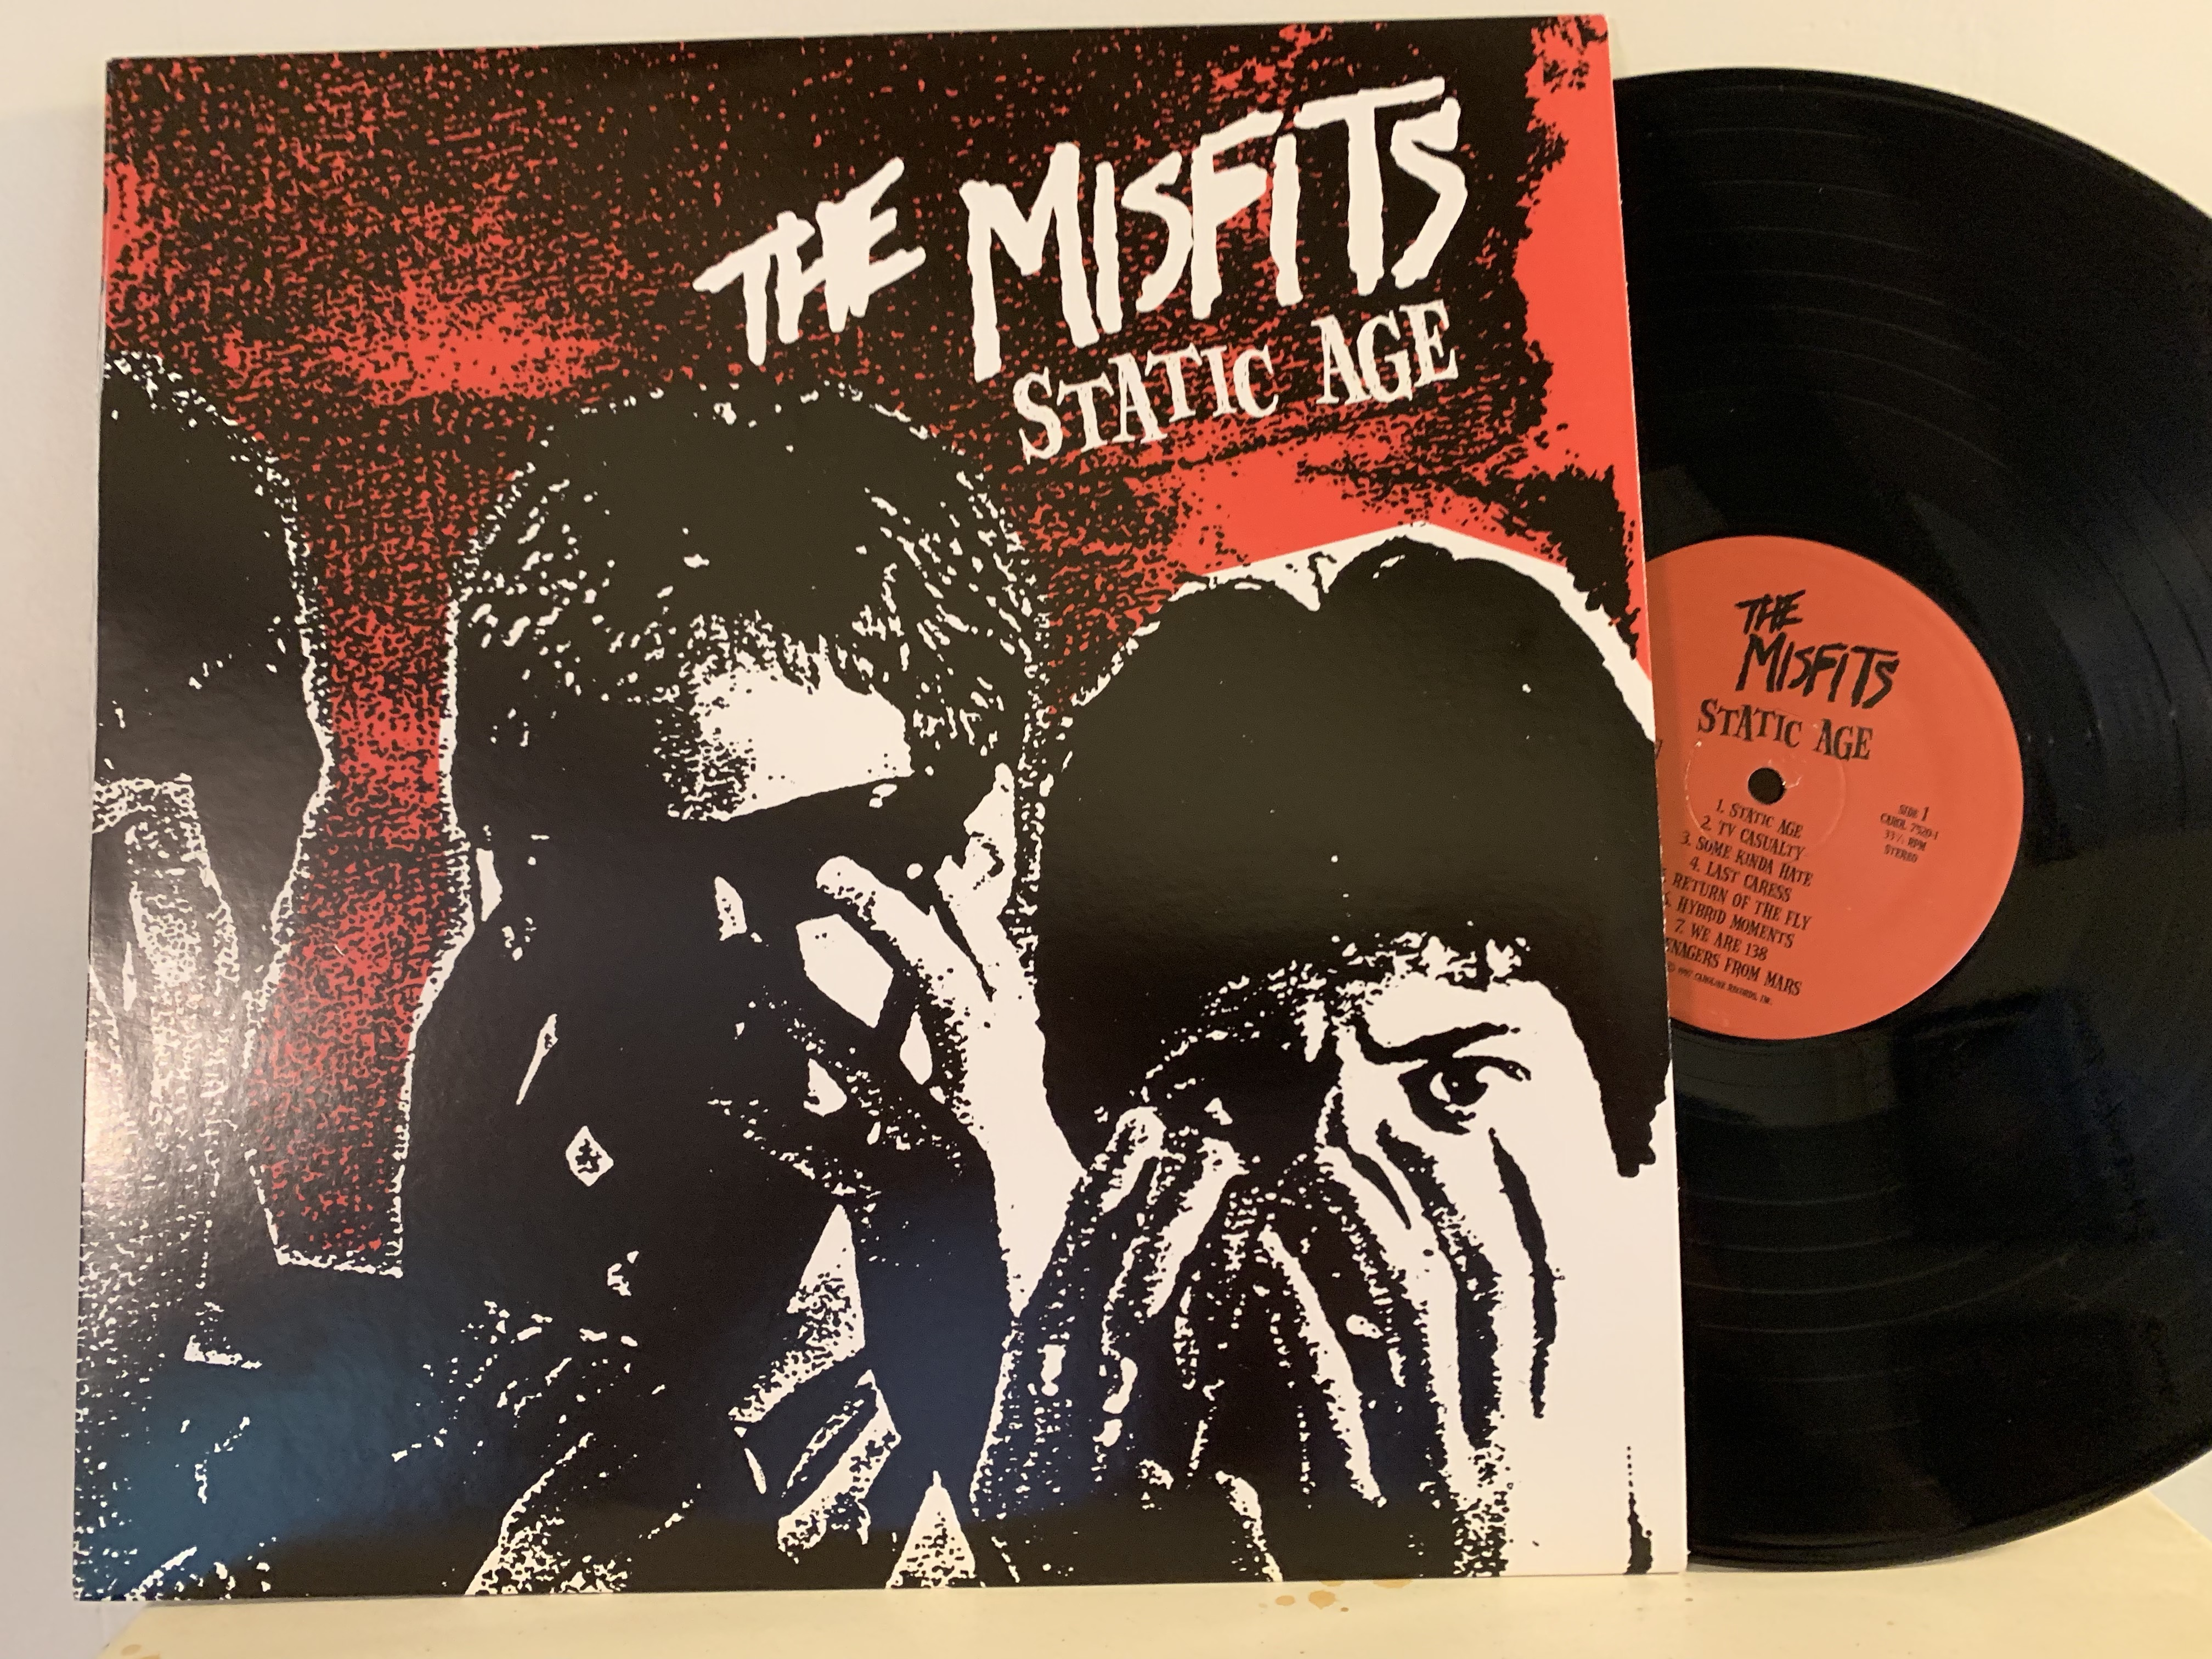 the misfit static age